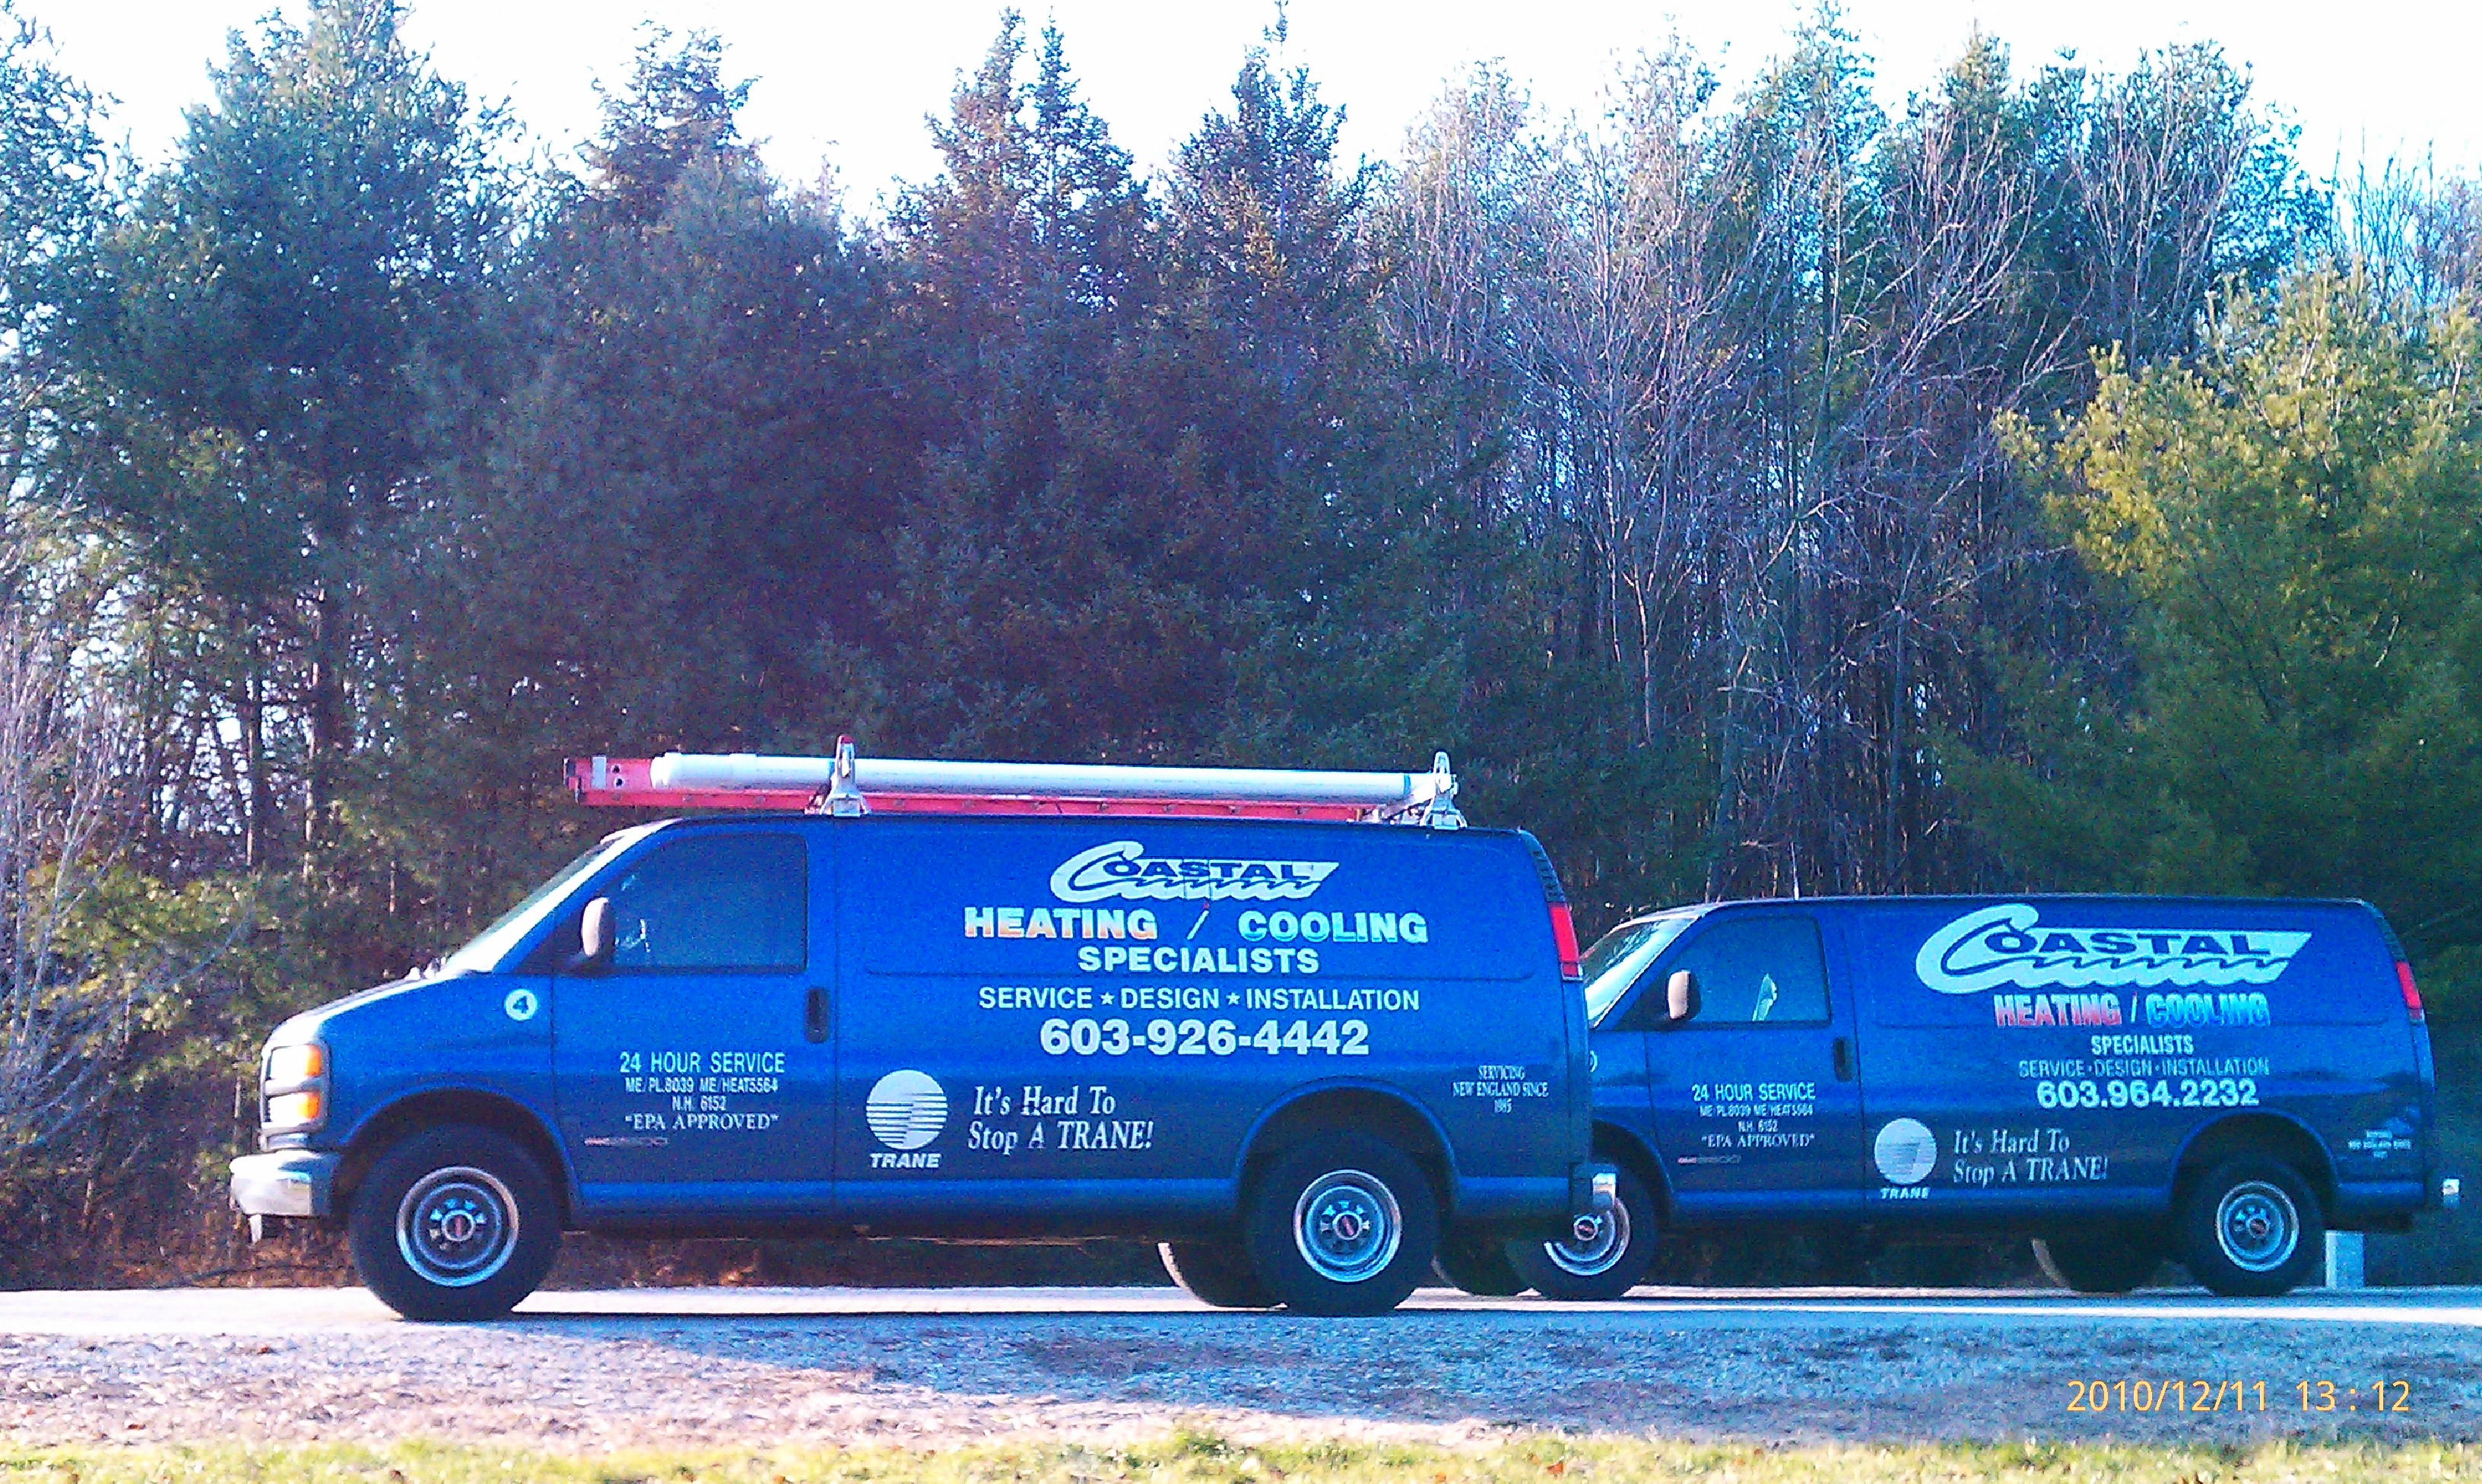 Coastal Heating/Cooling Specialists